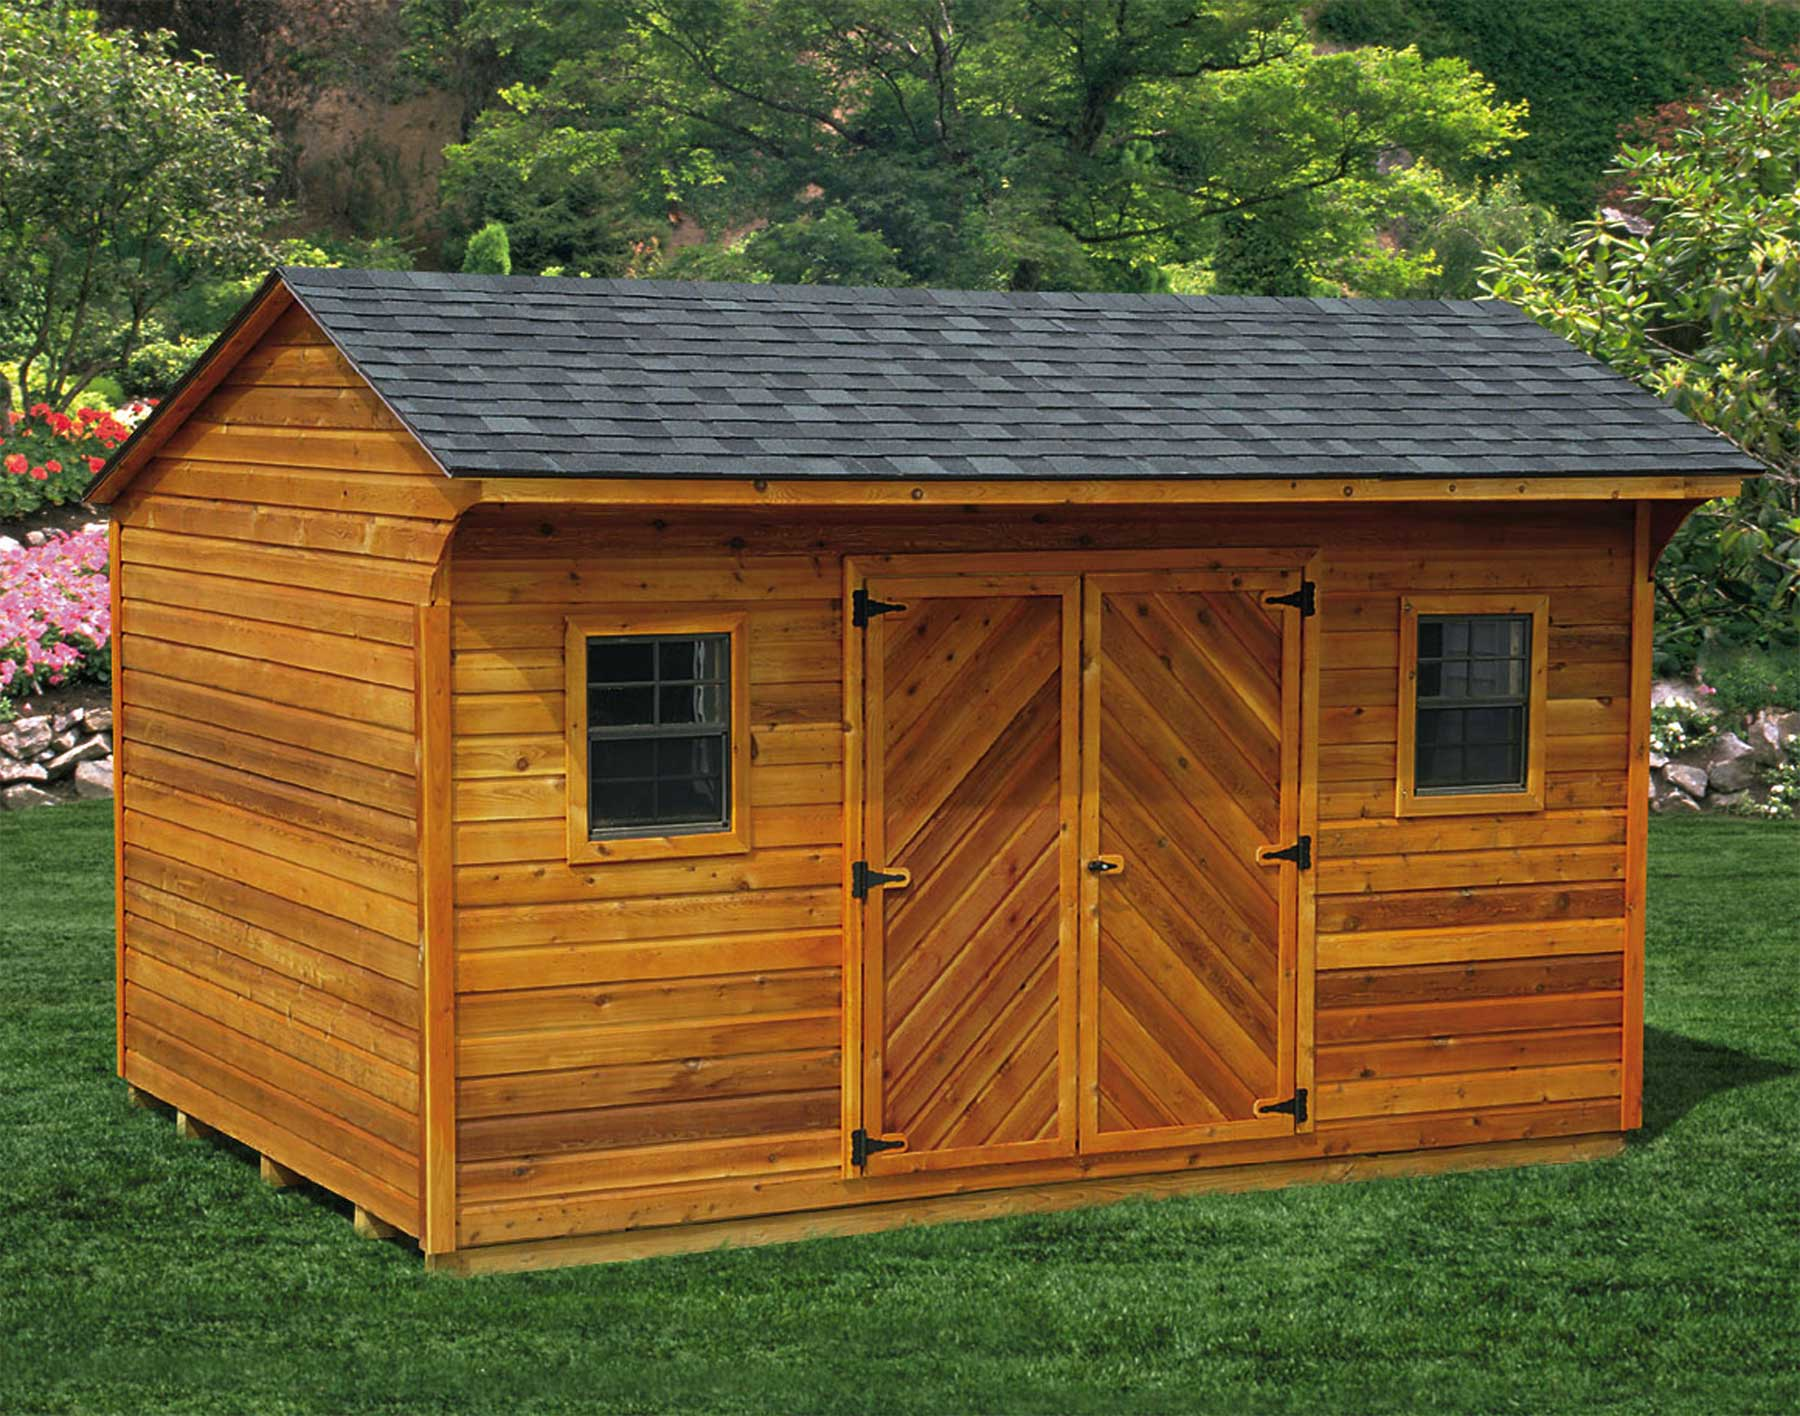 Simple Storage Shed Designs For Your Backyard | Cool Shed Design